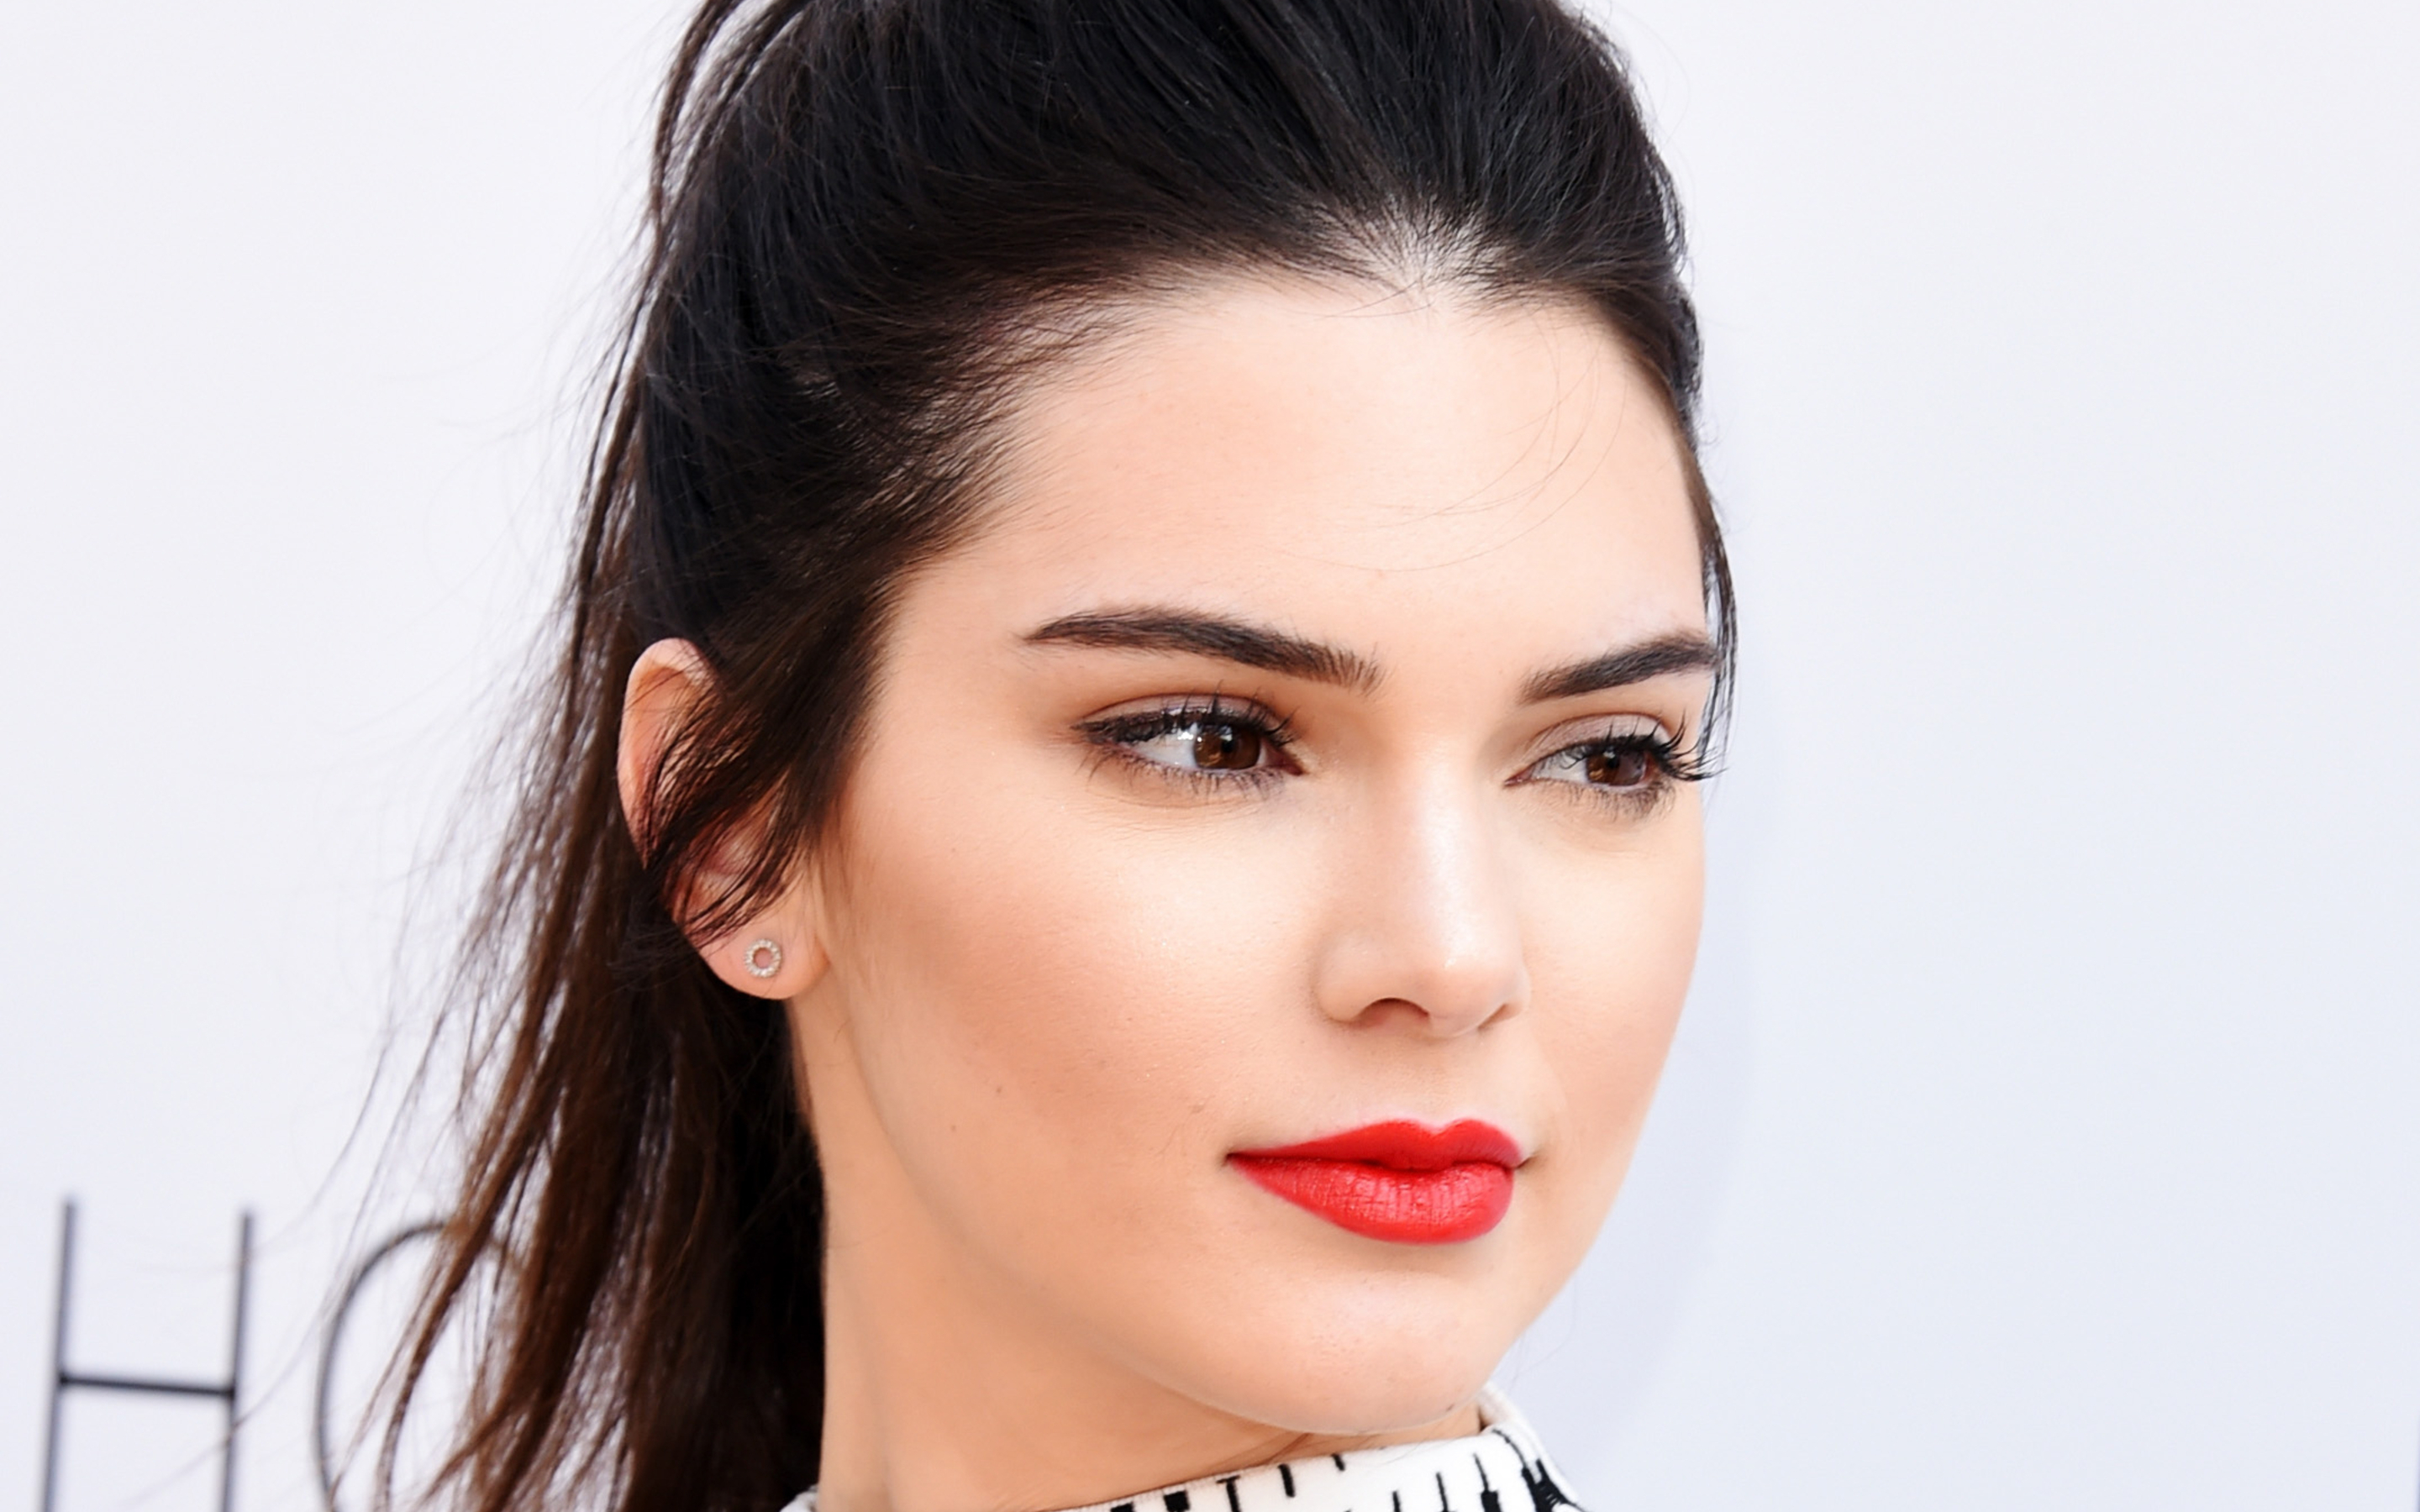 Kendall jenner2 - 2019 year